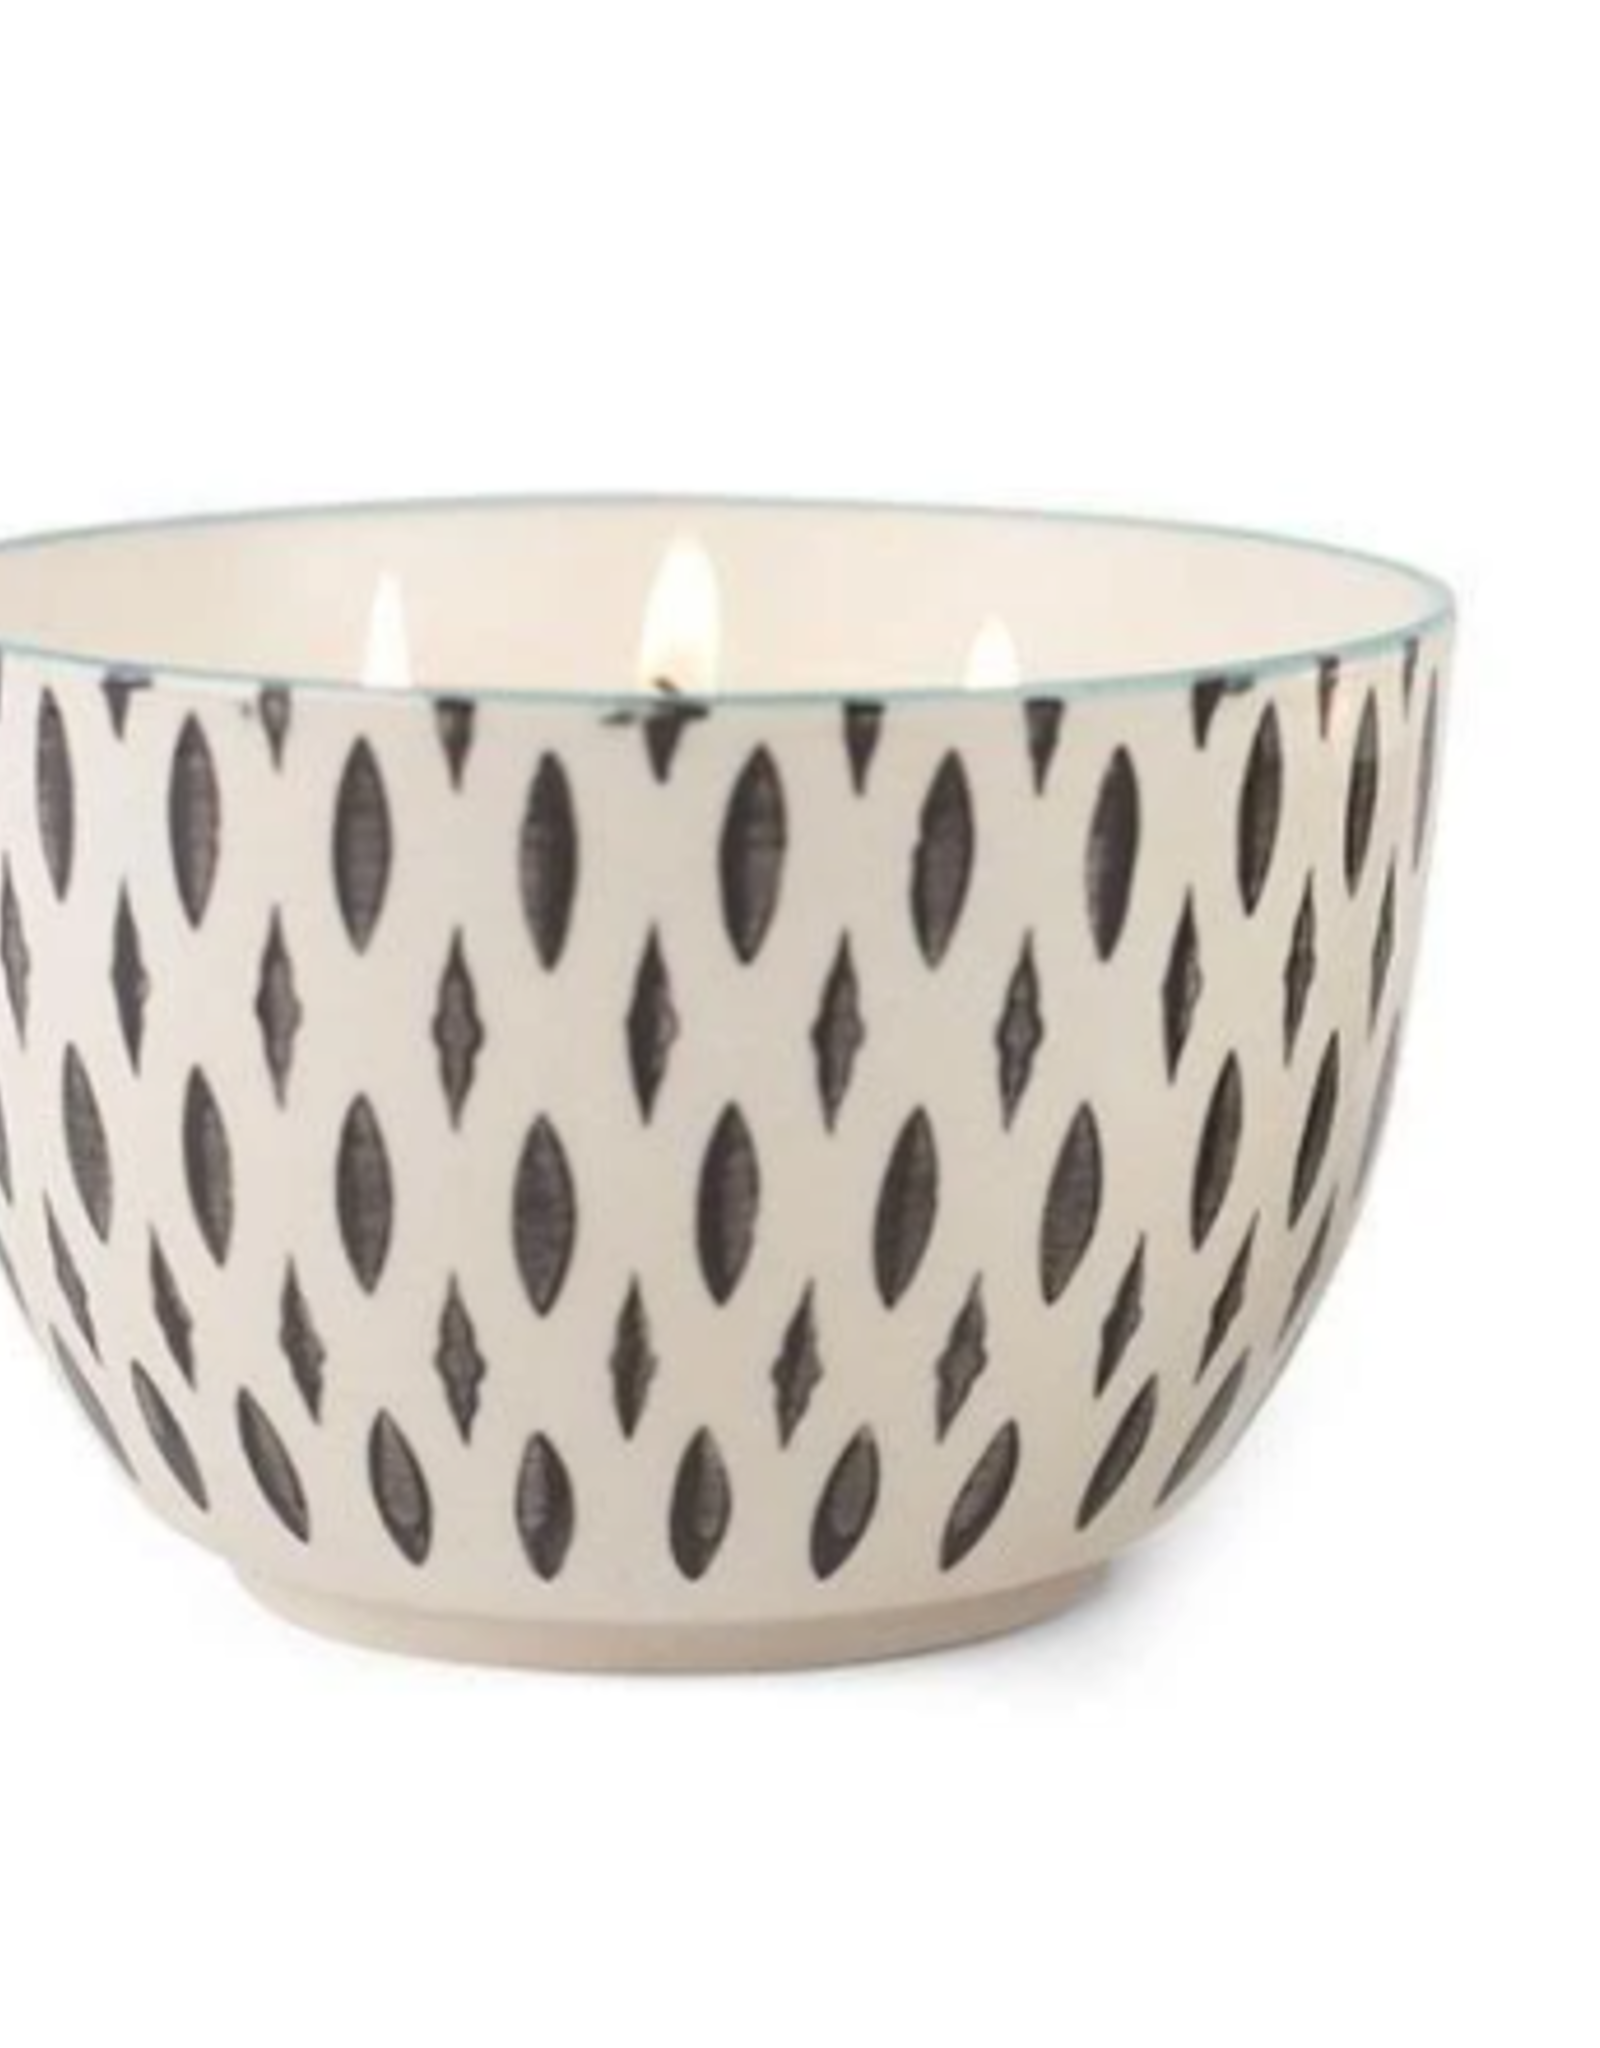 Earl Grey & Lavender Small Painted Bowl Candle - 7 oz.